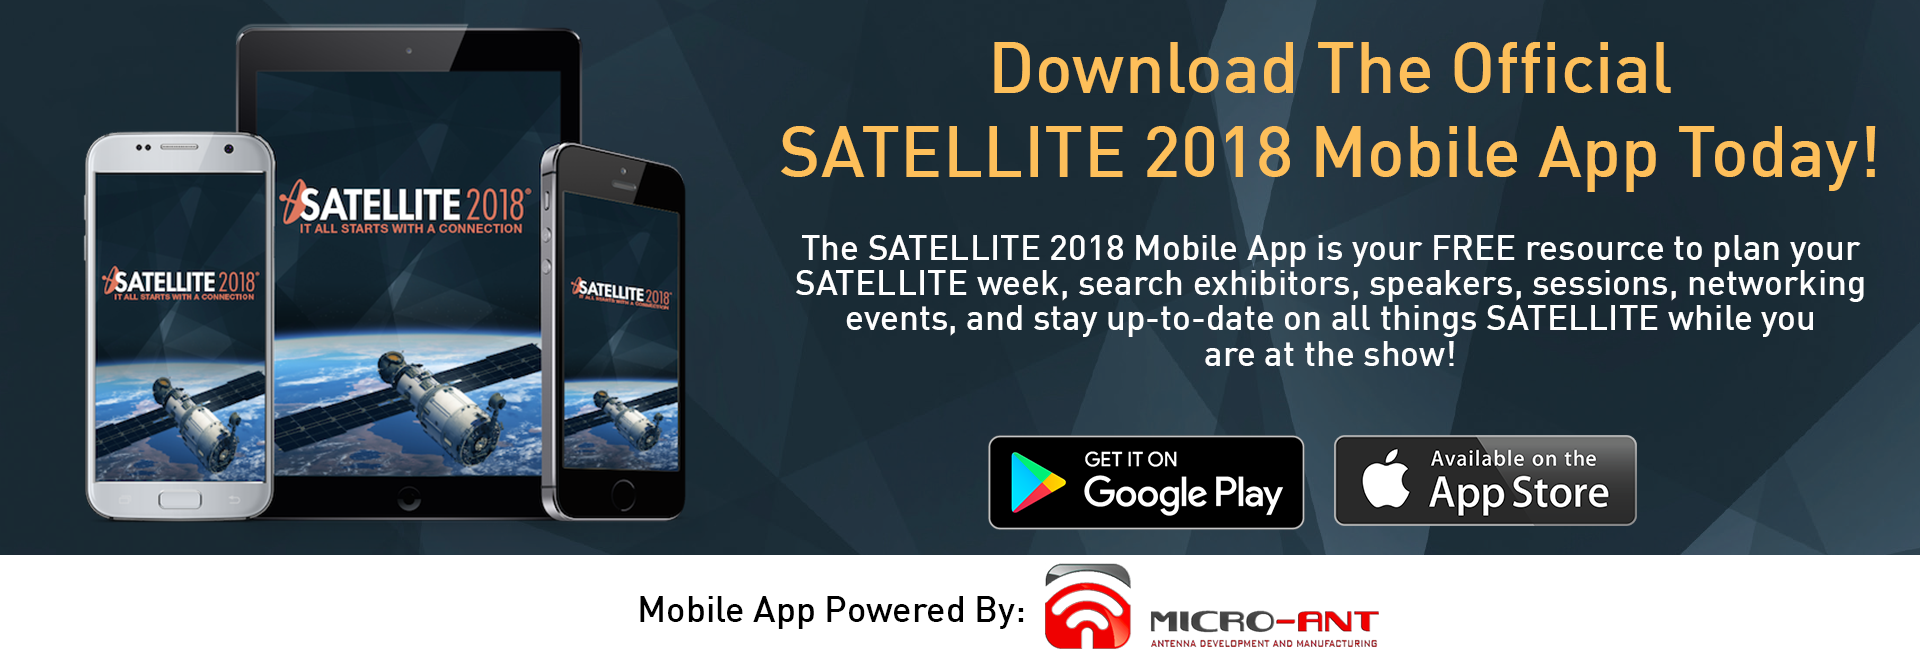 Hotel Travel Satellite 2018 Solid State Relay Circuit Hacking Gadget World Mobile App